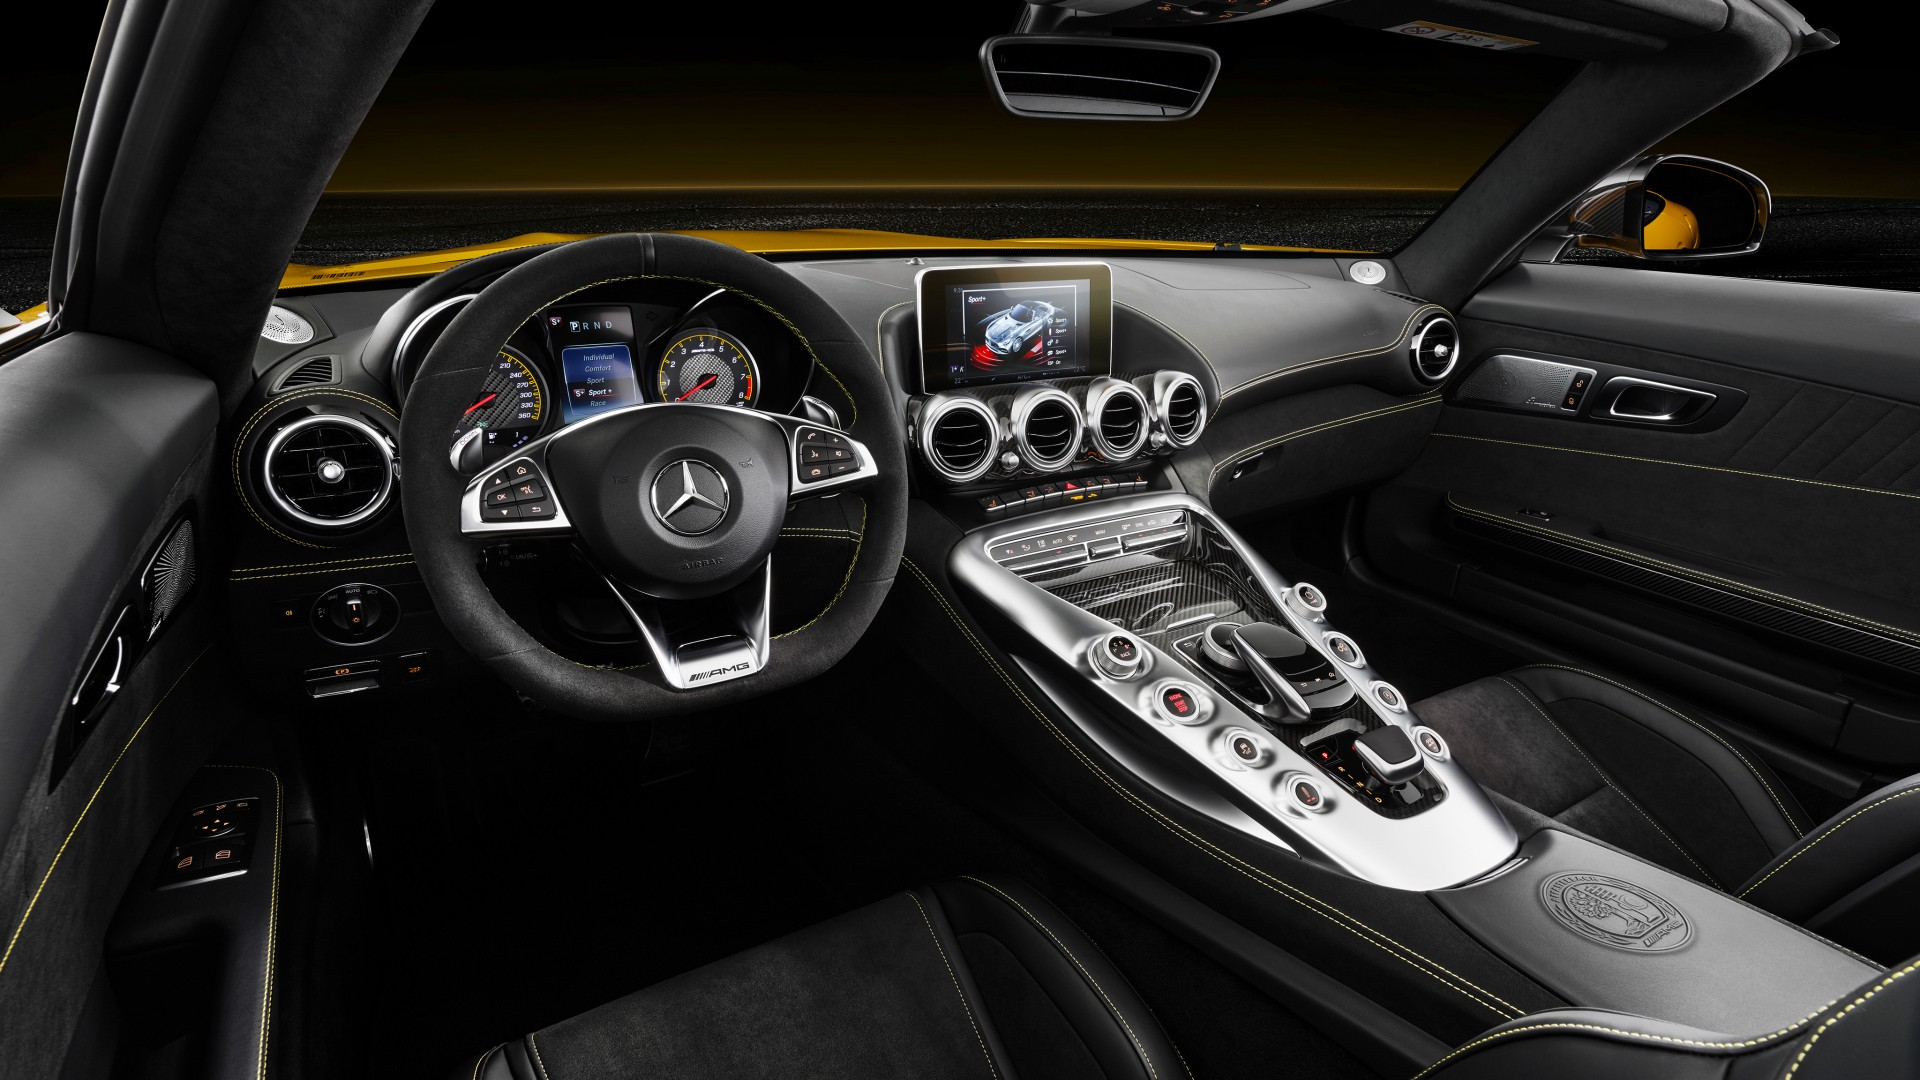 2018 mercedes amg gt s roadster 4k interior wallpaper hd car wallpapers id 10382. Black Bedroom Furniture Sets. Home Design Ideas